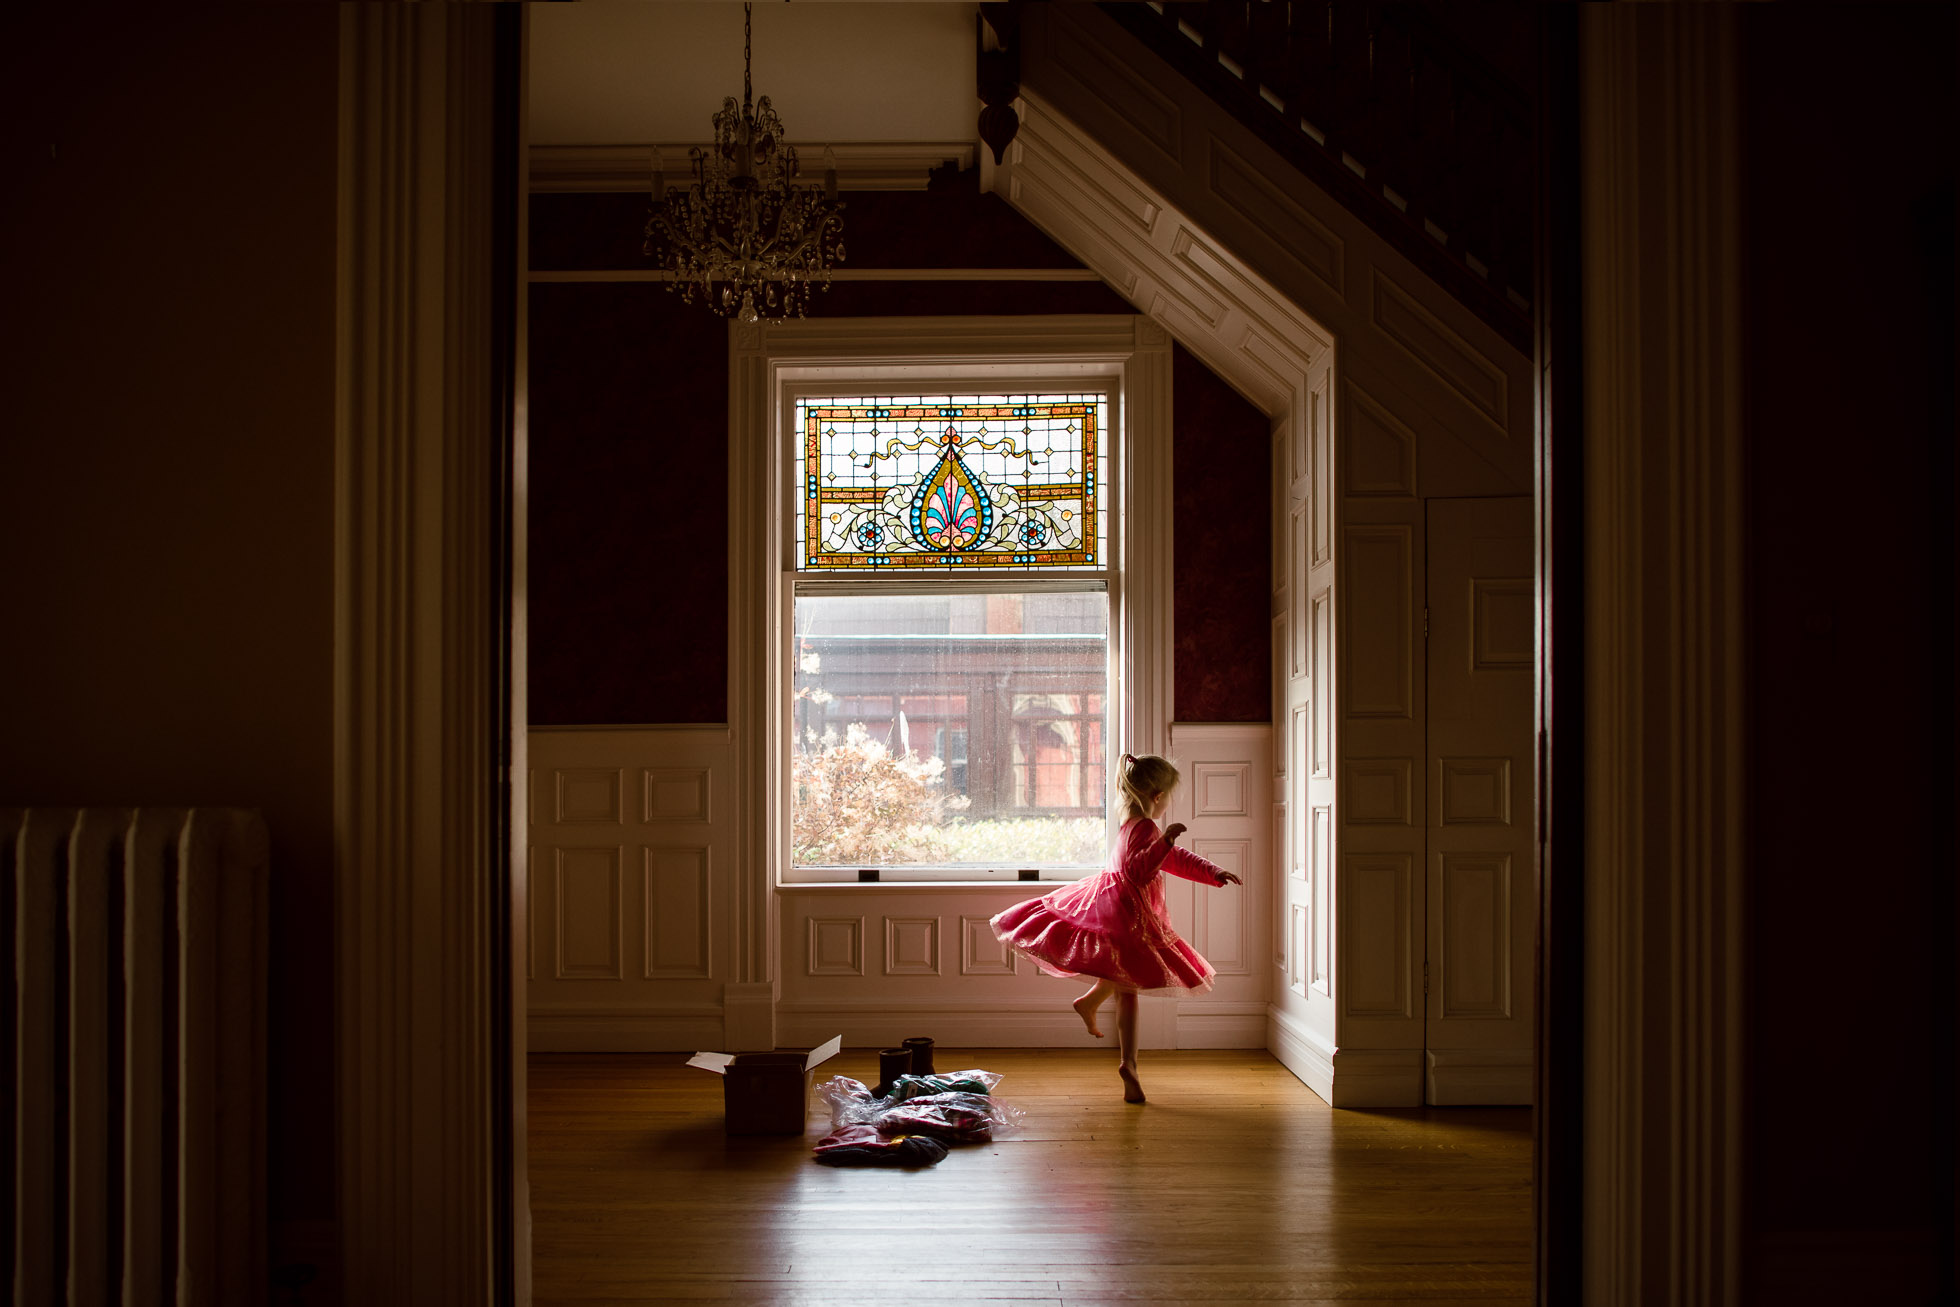 everyday-documentary-photo-of-little-girl-prentending-to-be-ballerina-twirling-in-pink-dress-while-trying-on-new-clothes-in-beautiful-window-light-by-sarah-wilkerson-2